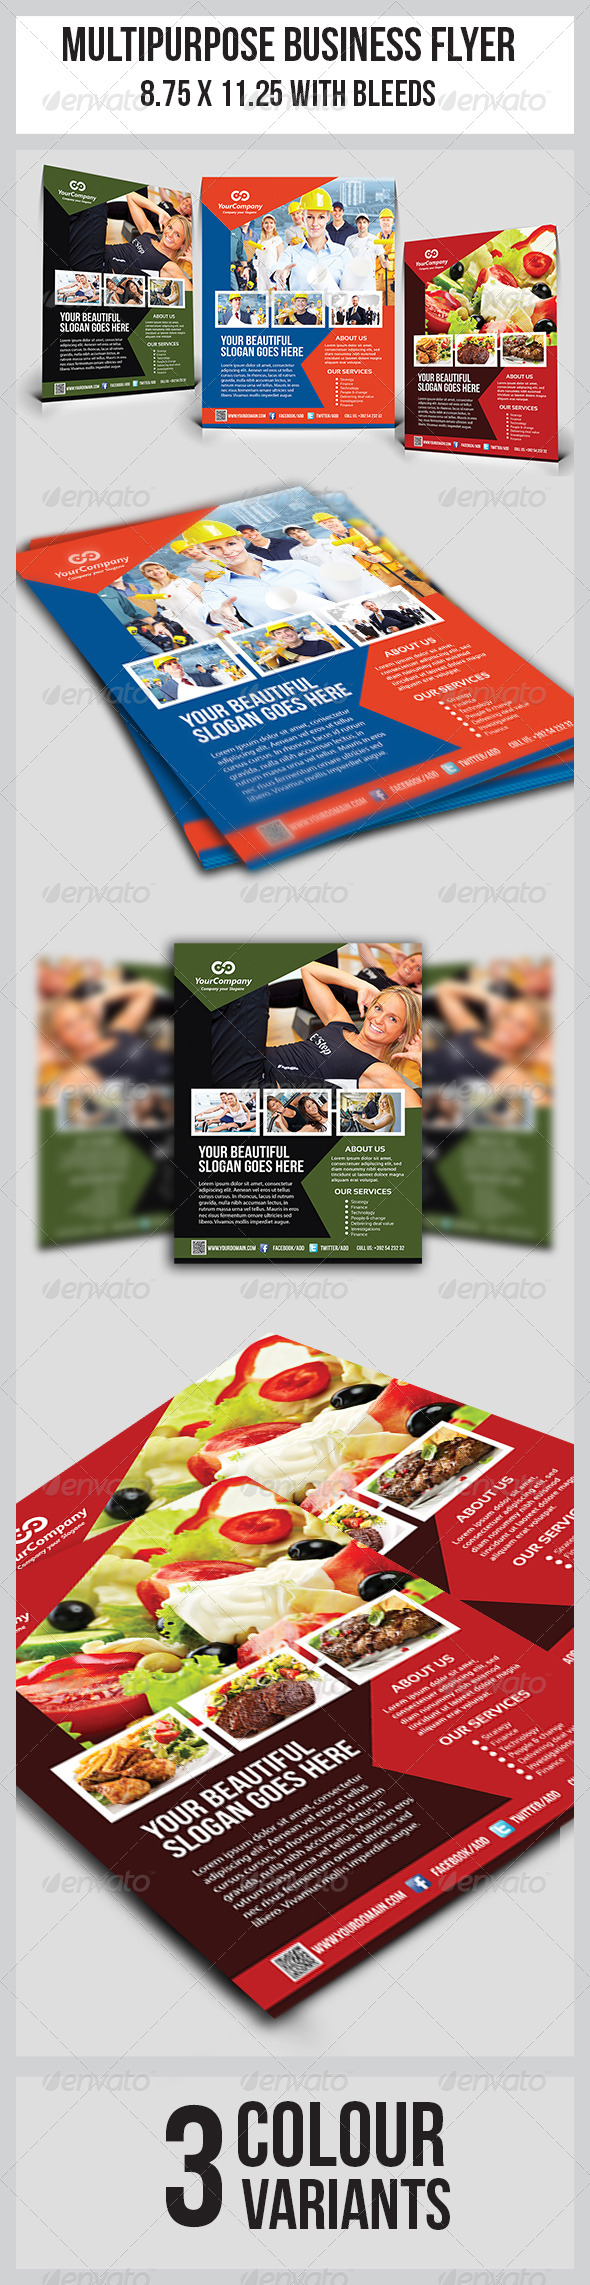 GraphicRiver Multipurpose Business Flyer 7606274